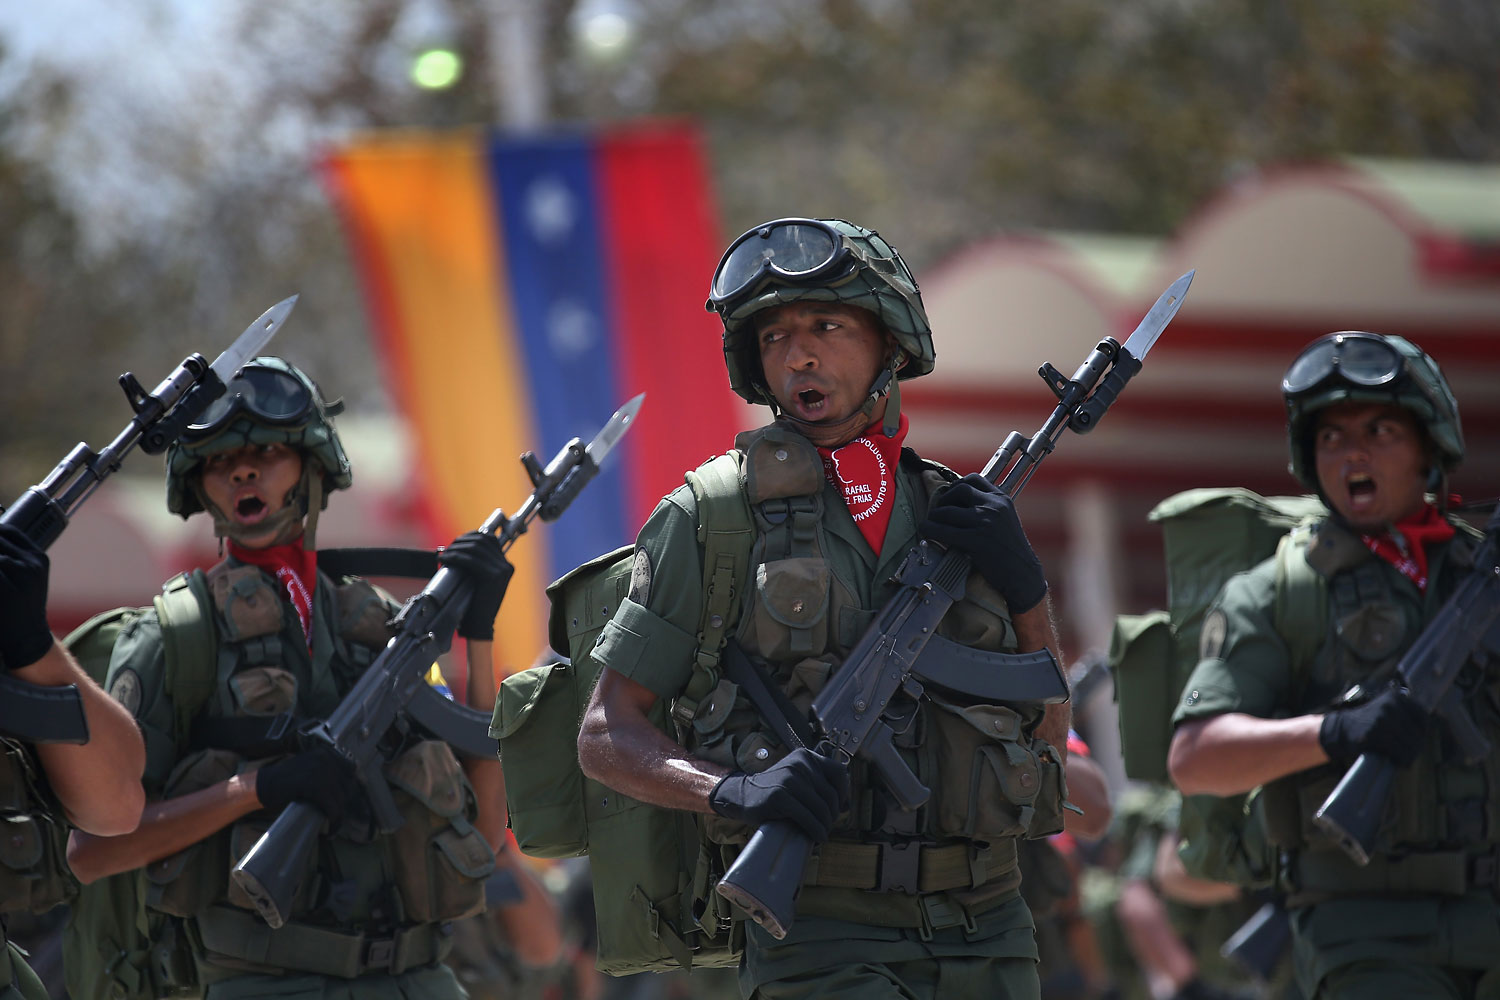 Venezuelan soldiers pass by dignitaries while marking the first anniversary of the death of Hugo Chavez on March 5, 2014 in Caracas.